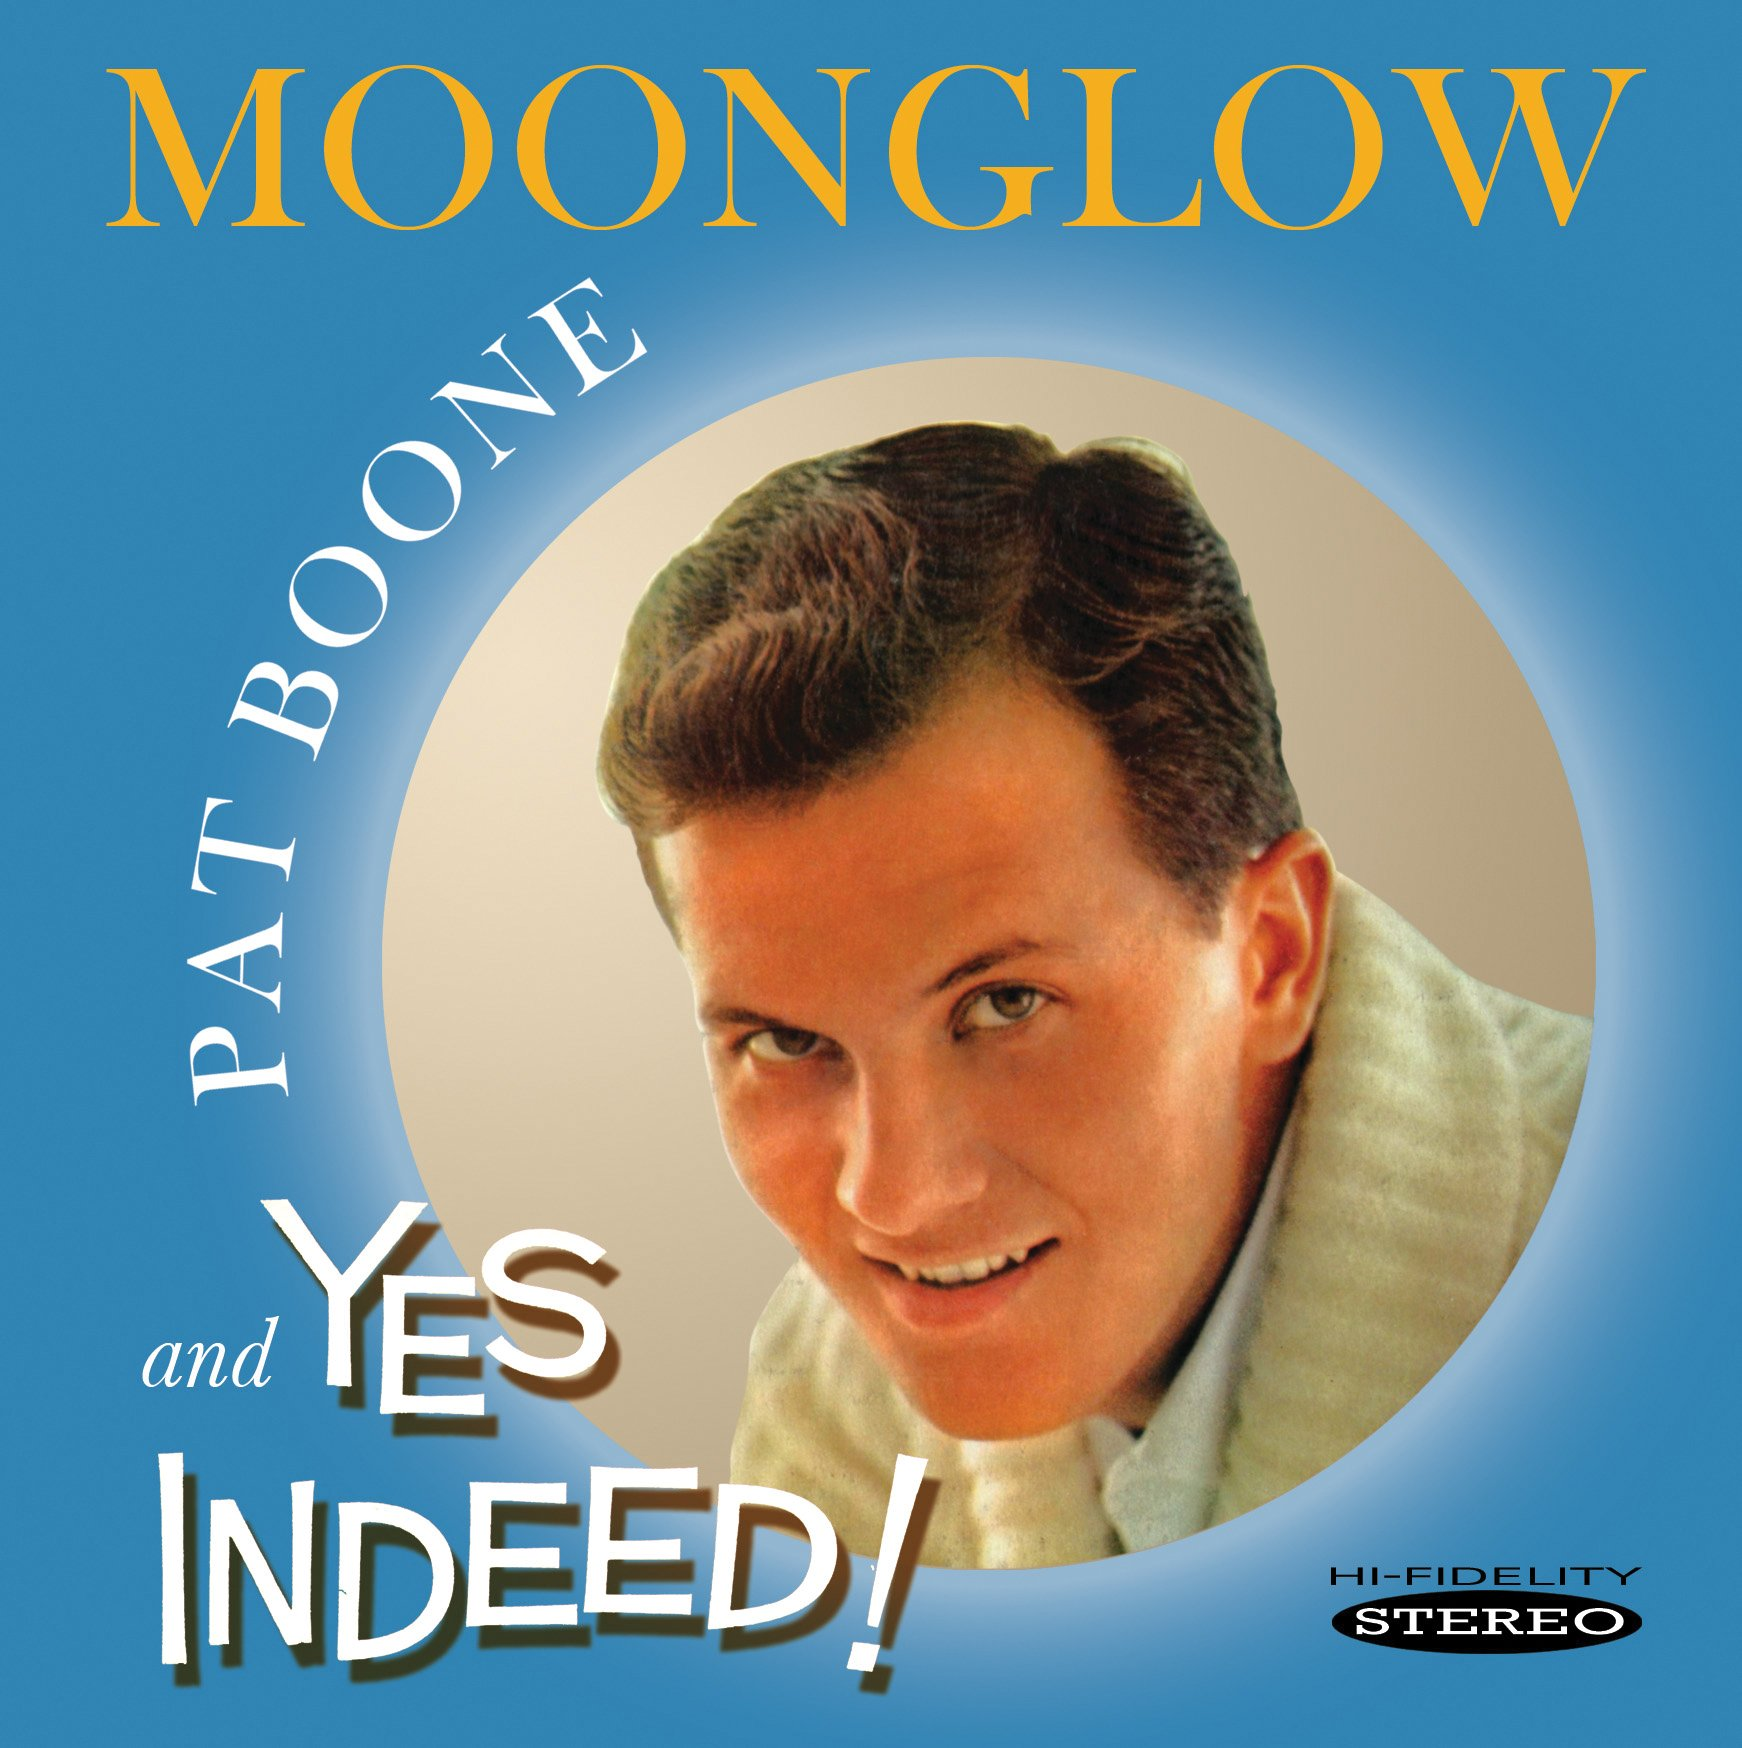 CD : Pat Boone - Moonglow And Yes Indeed! (Jewel Case Packaging)